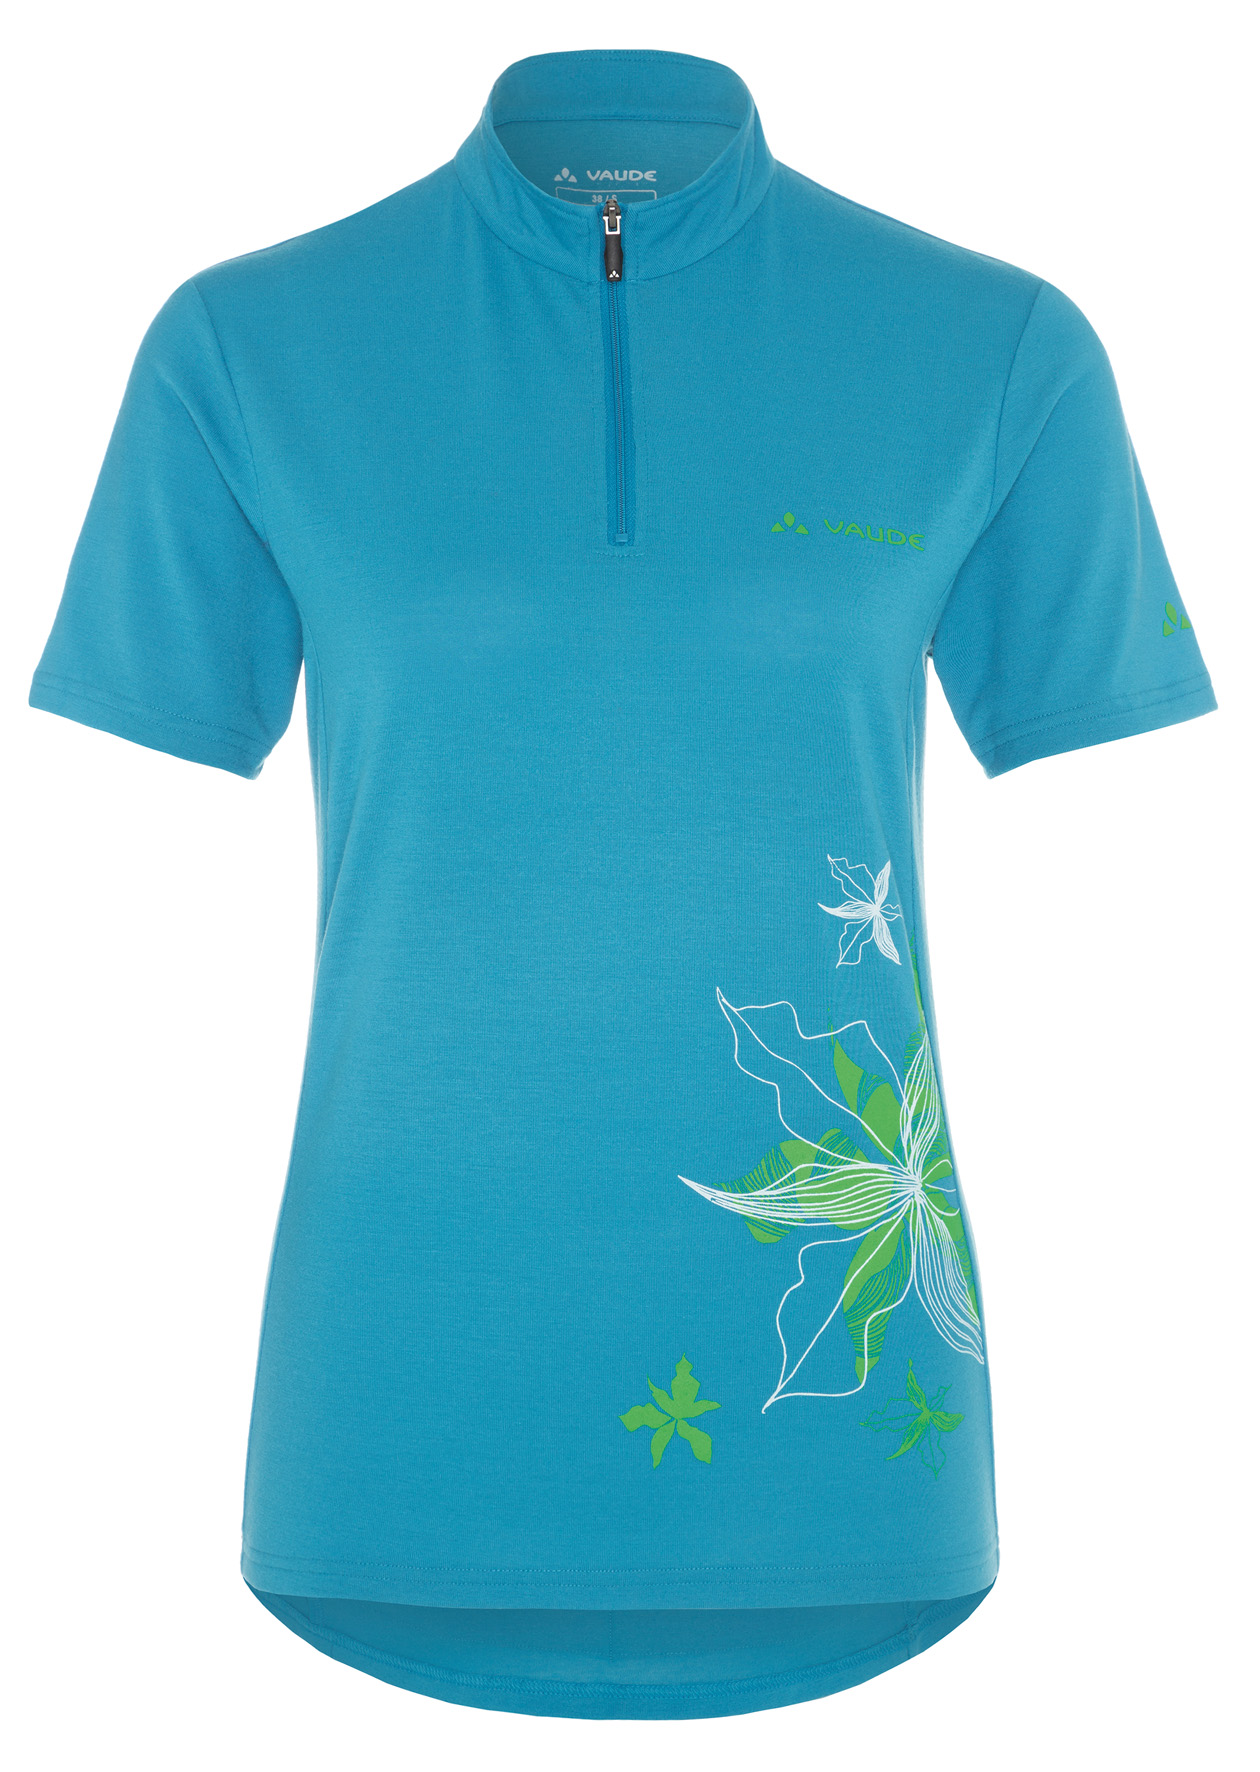 Women´s Sentiero Shirt teal blue Größe 36 - schneider-sports